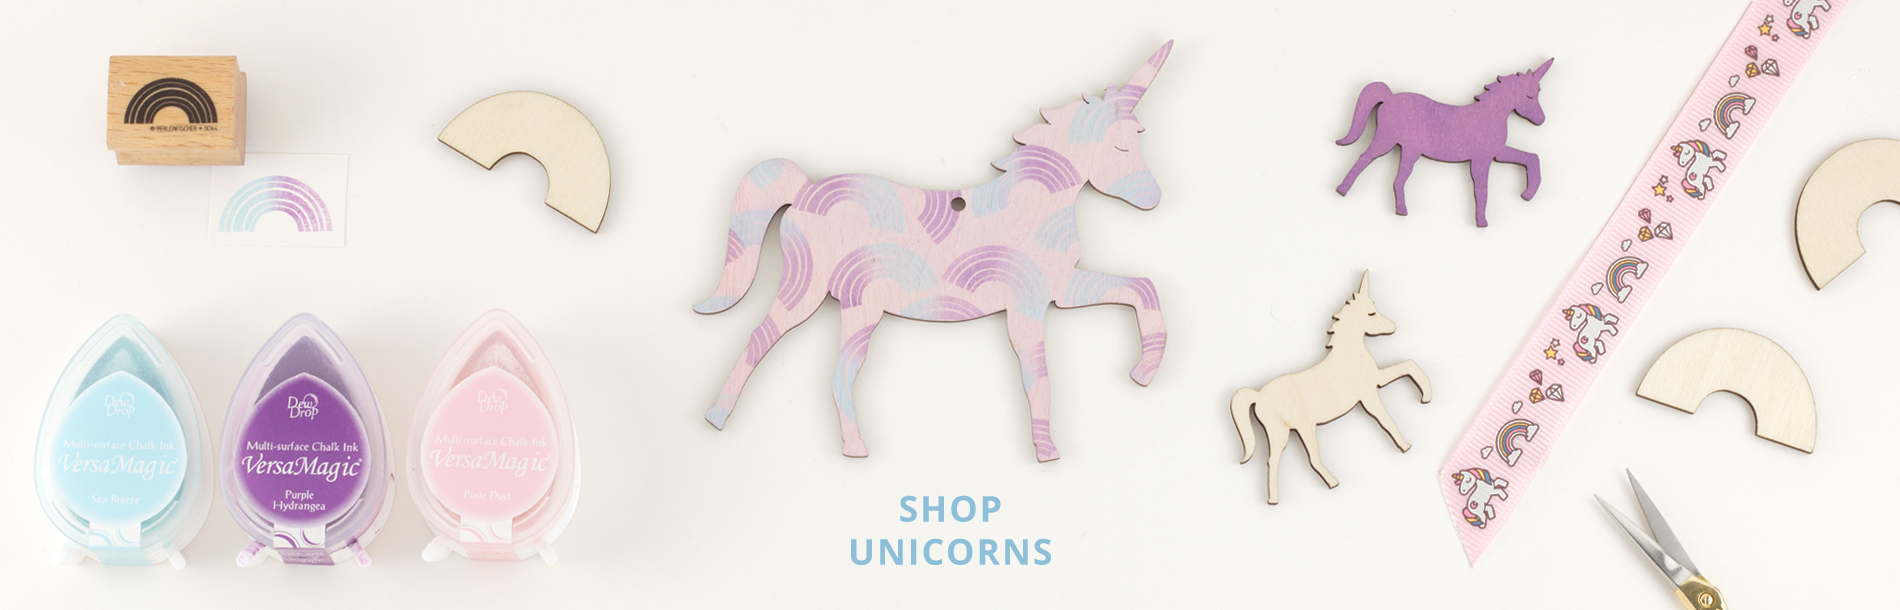 Artcuts Wooden Unicorn Craft Shapes